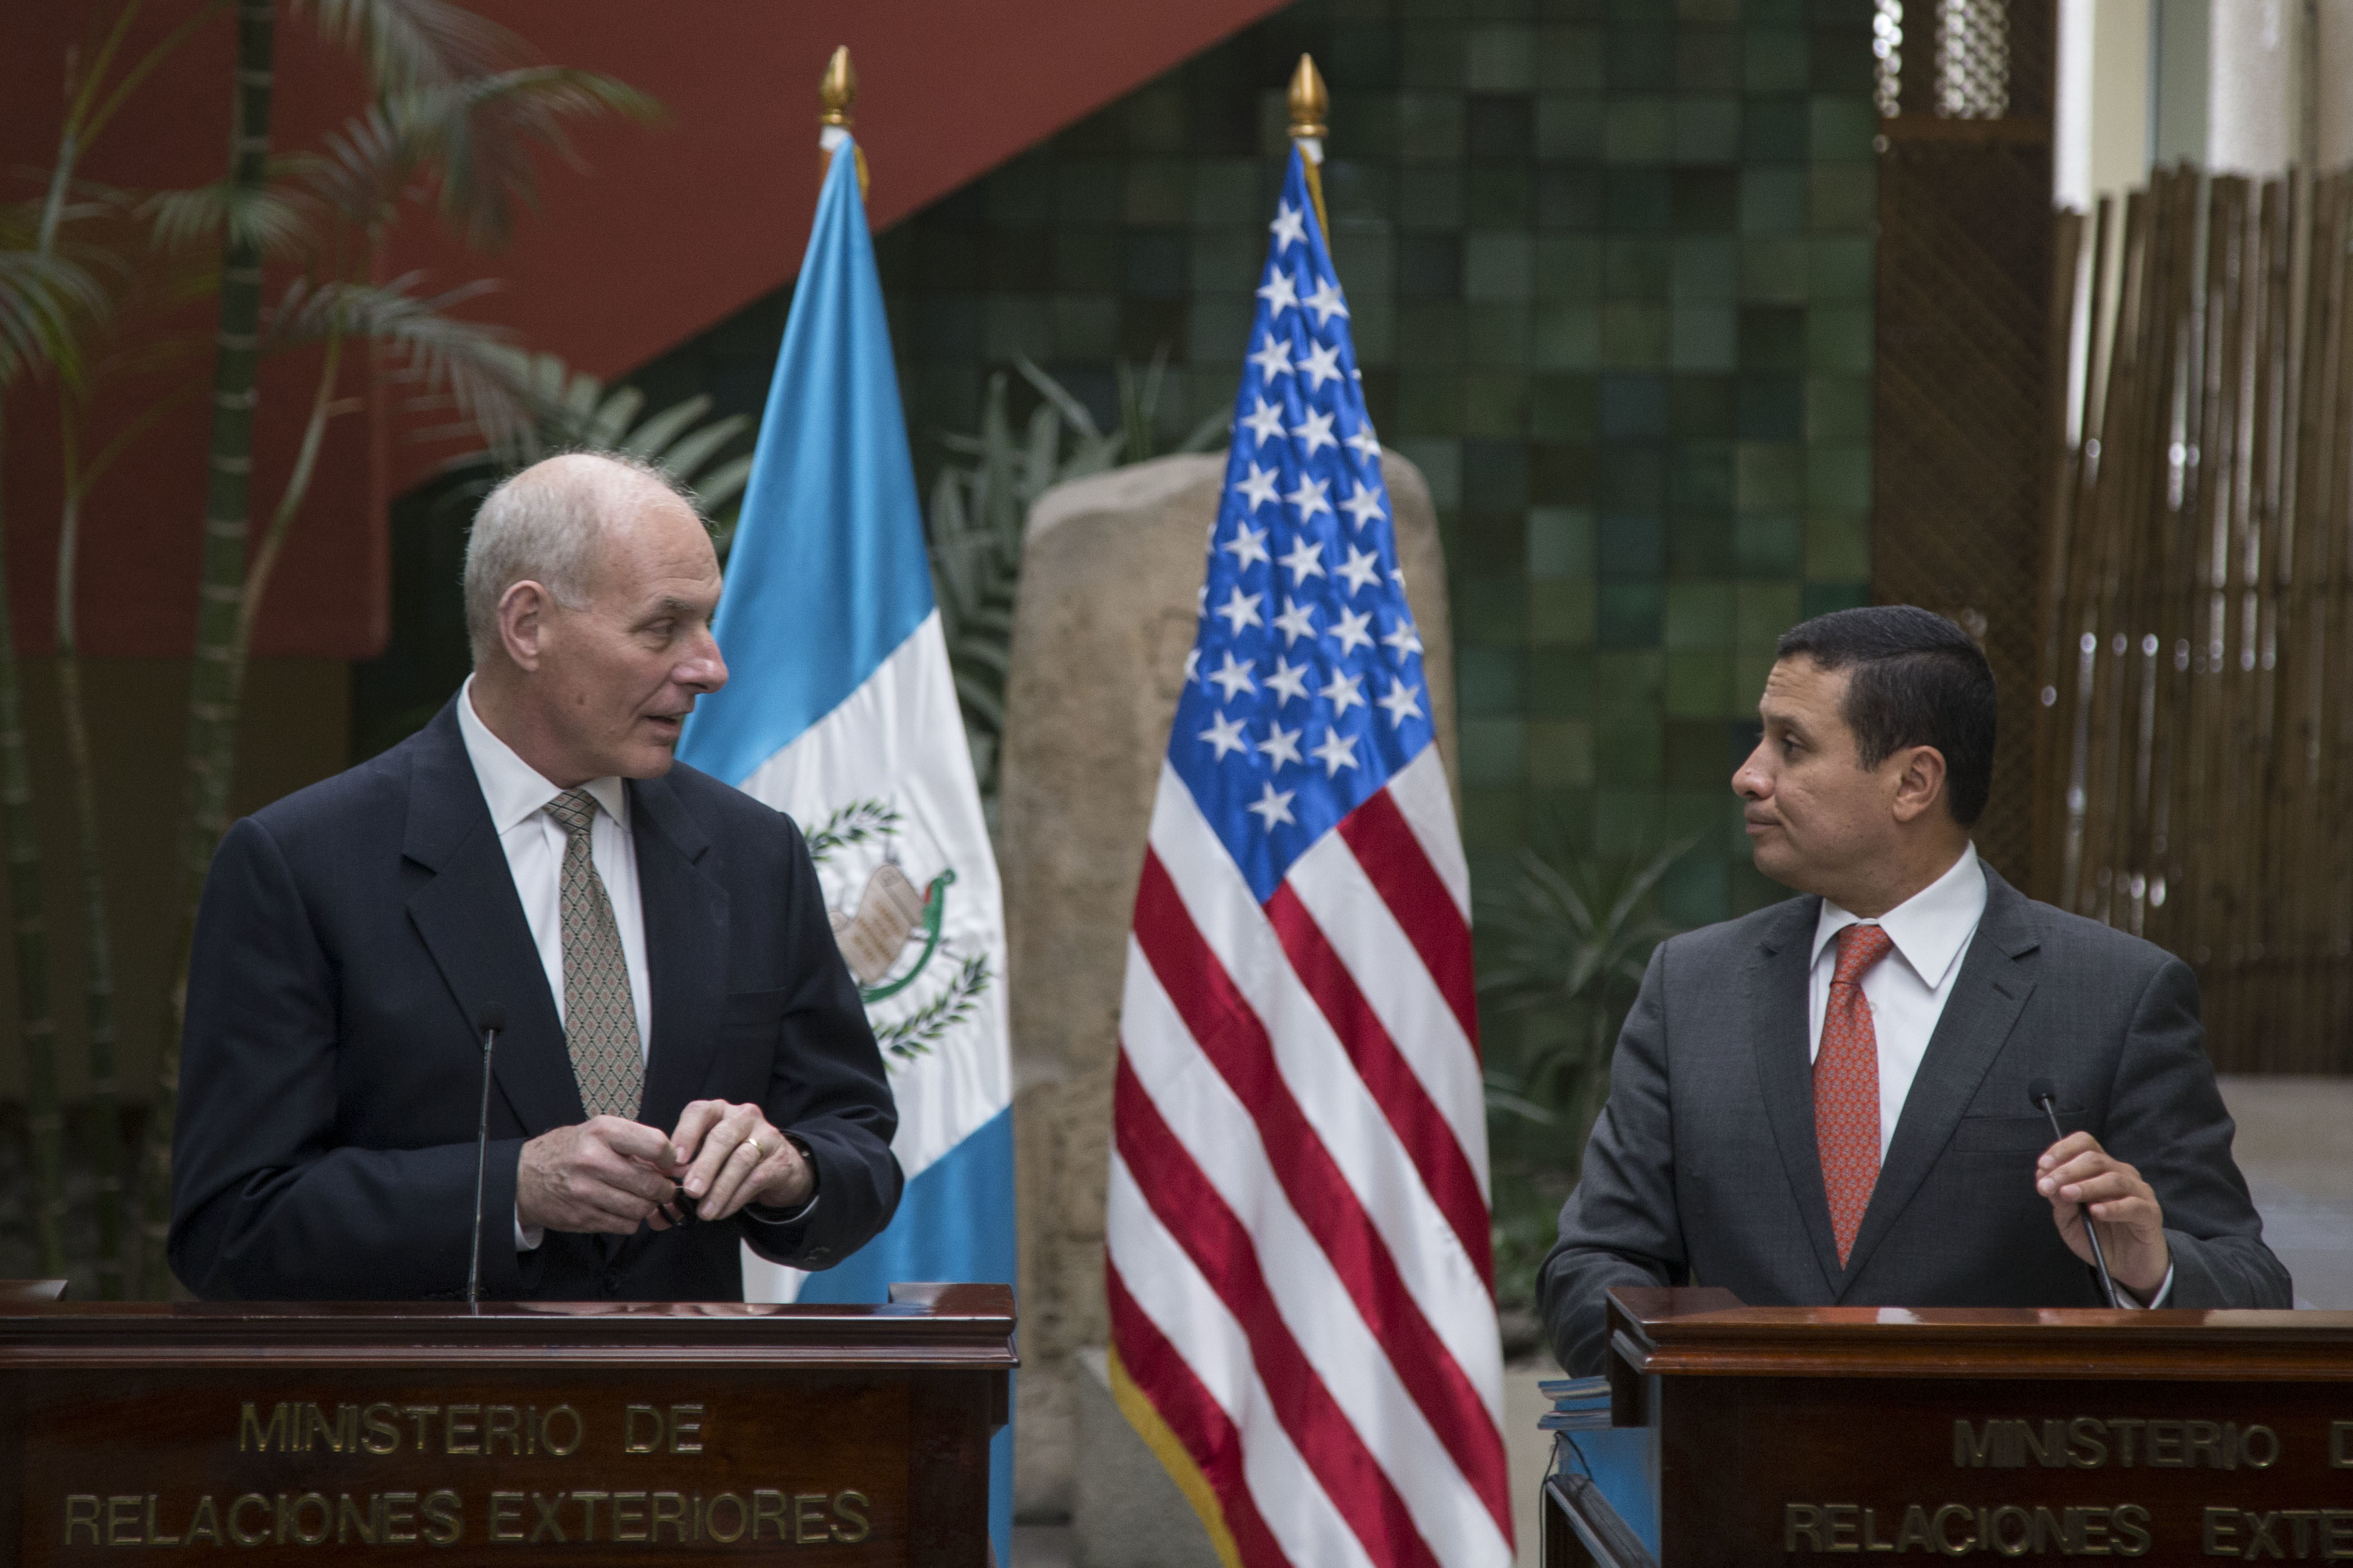 U.S. Secretary of Homeland Security John F. Kelly (L) and Guatemala's Foreign Minister Carlos Morales give a joint press conference at the Foreign Affairs Ministry in Guatemala City on Feb. 22, 2017. (AP Photo/Luis Soto)